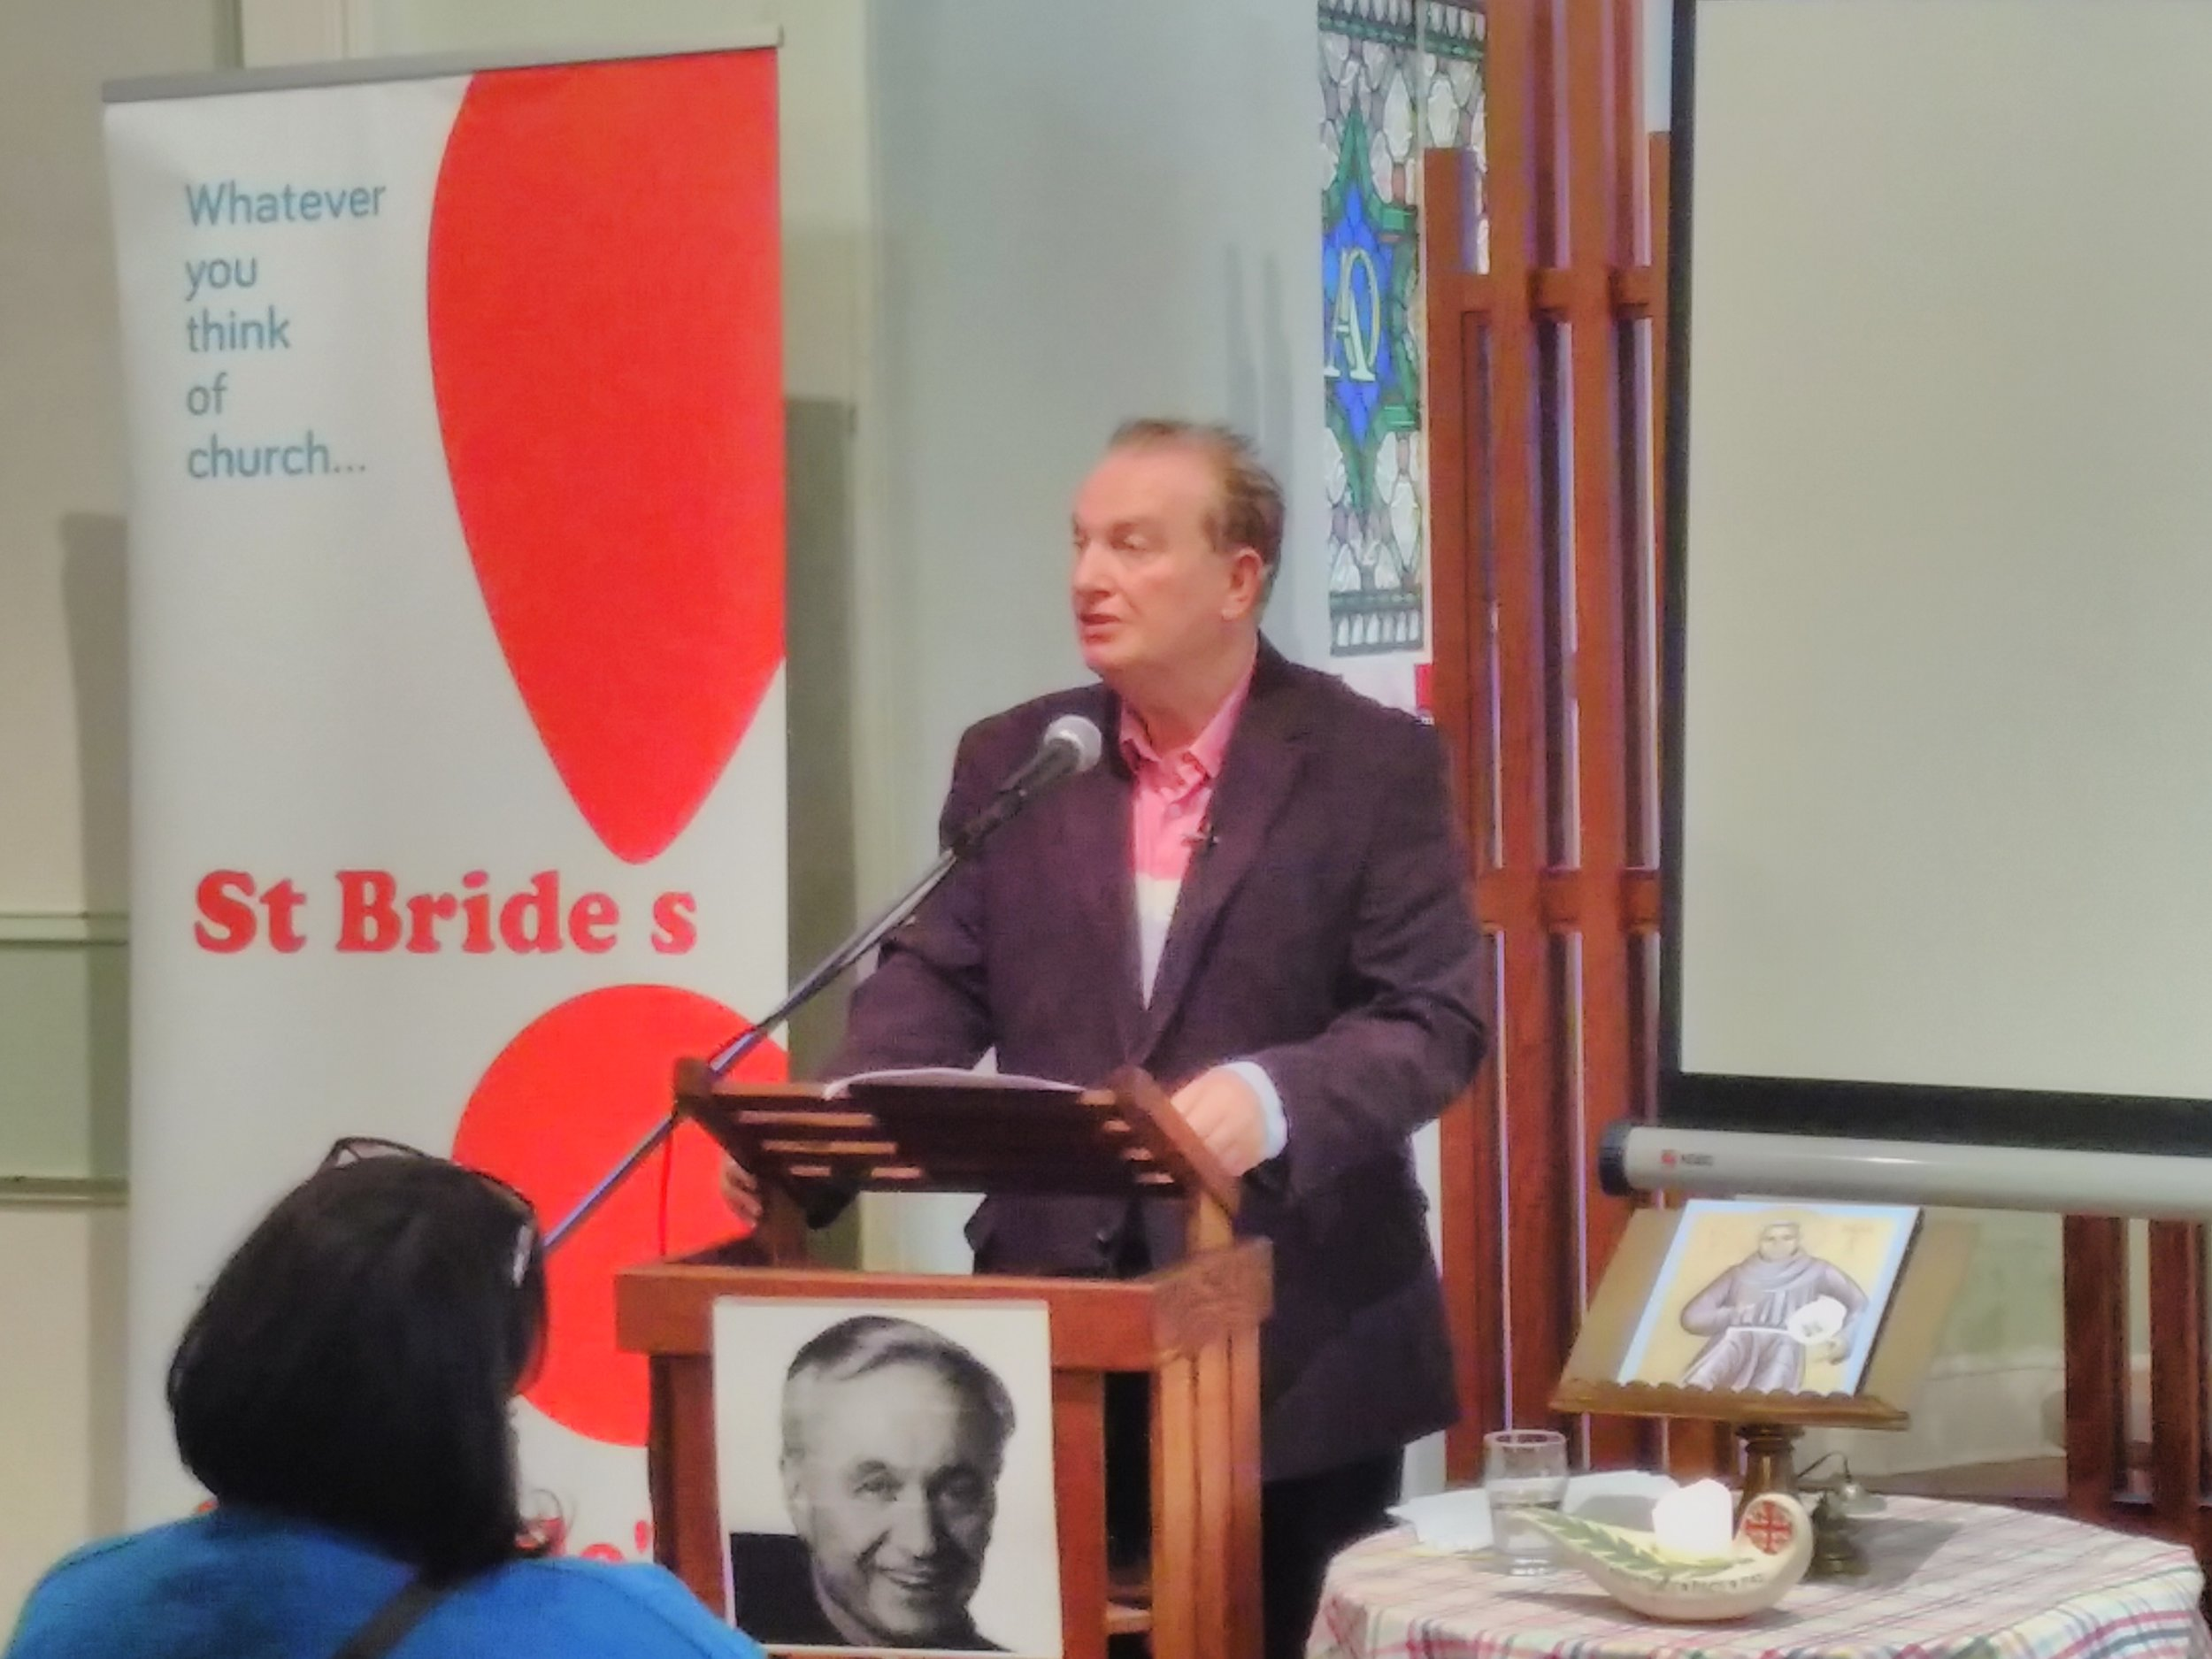 Fr Mychal Judge's biographer, journalist Michael Ford, speaking at St Bride's Liverpool, September 11, 2017